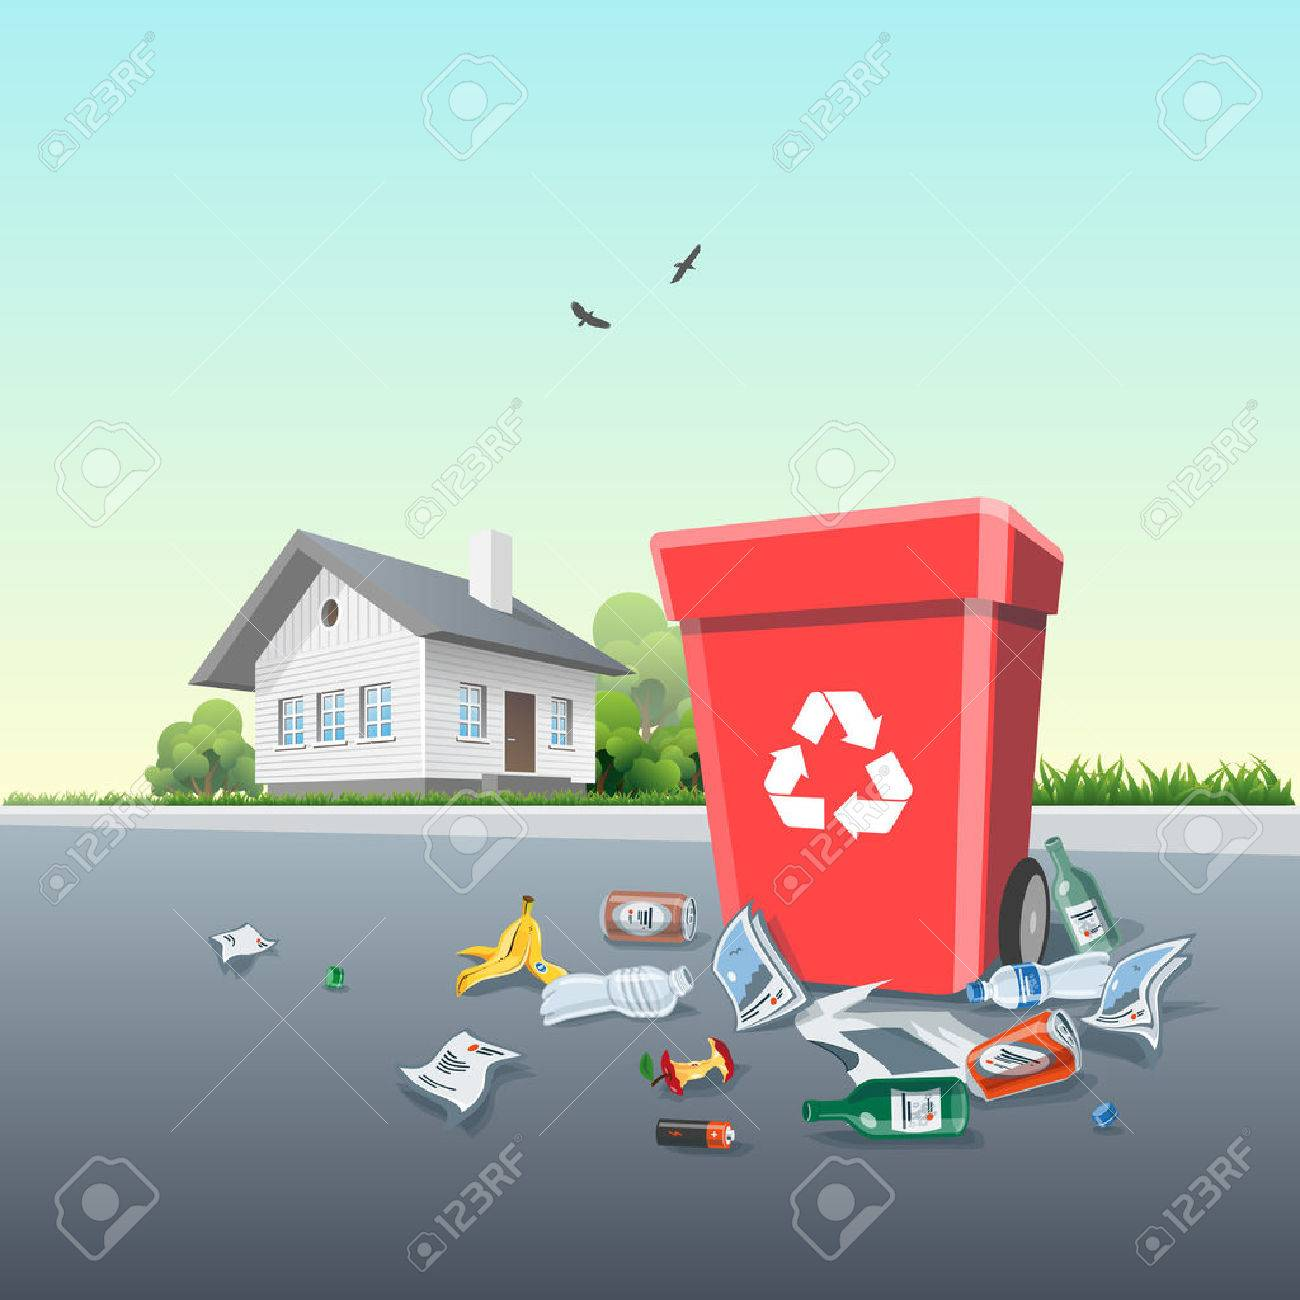 Vector illustration of littering waste that have been disposed improperly, without consent, at an inappropriate location around the dust bin on the street exterior in front of the residential house. Garbage can is full of trash. Trash is fallen on the gro - 51678727